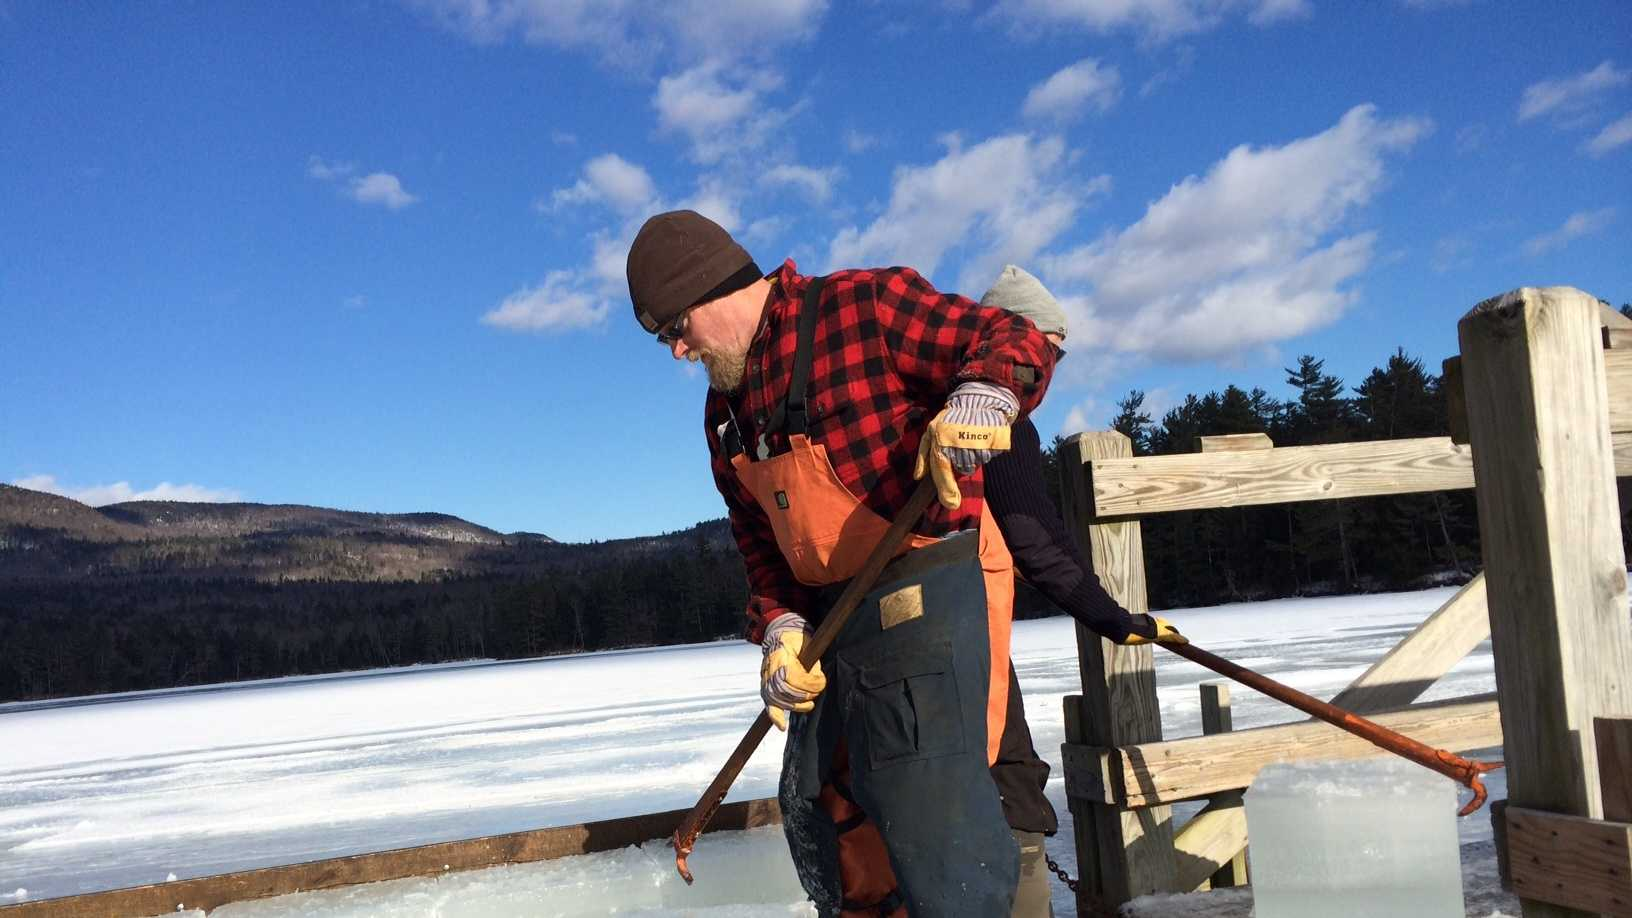 Workers cut 150-pound blocks of ice on Squam Lake.